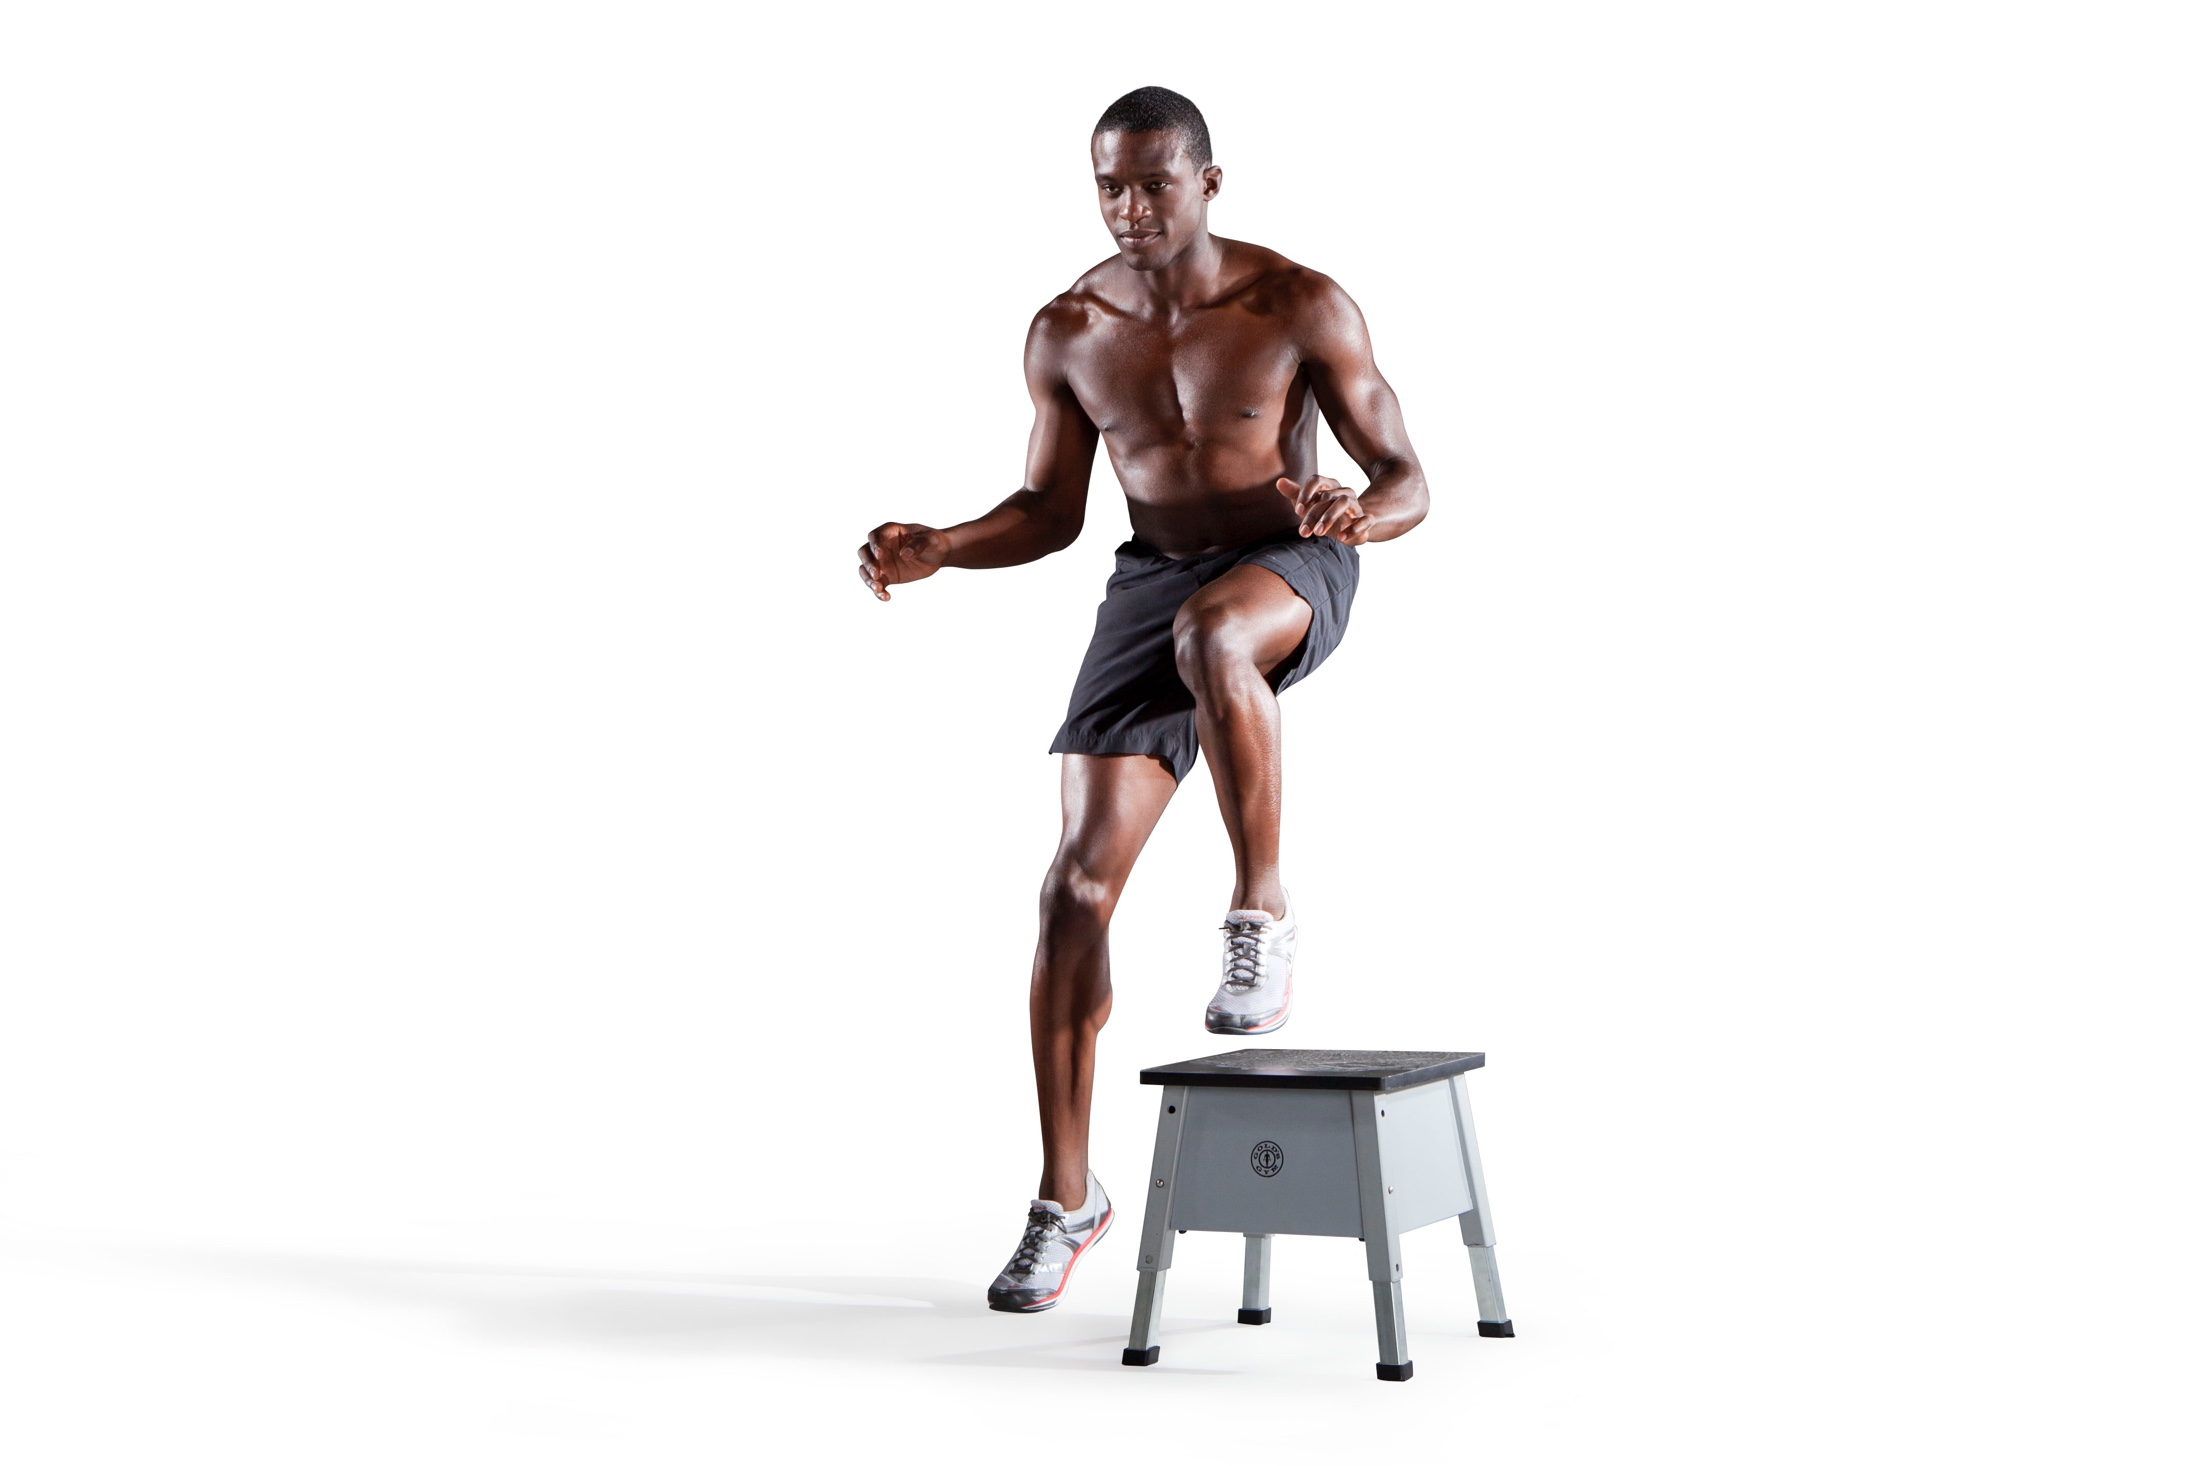 NordicTrack Gold's Gym Adjustable Plyometric Jump Box gallery image 4